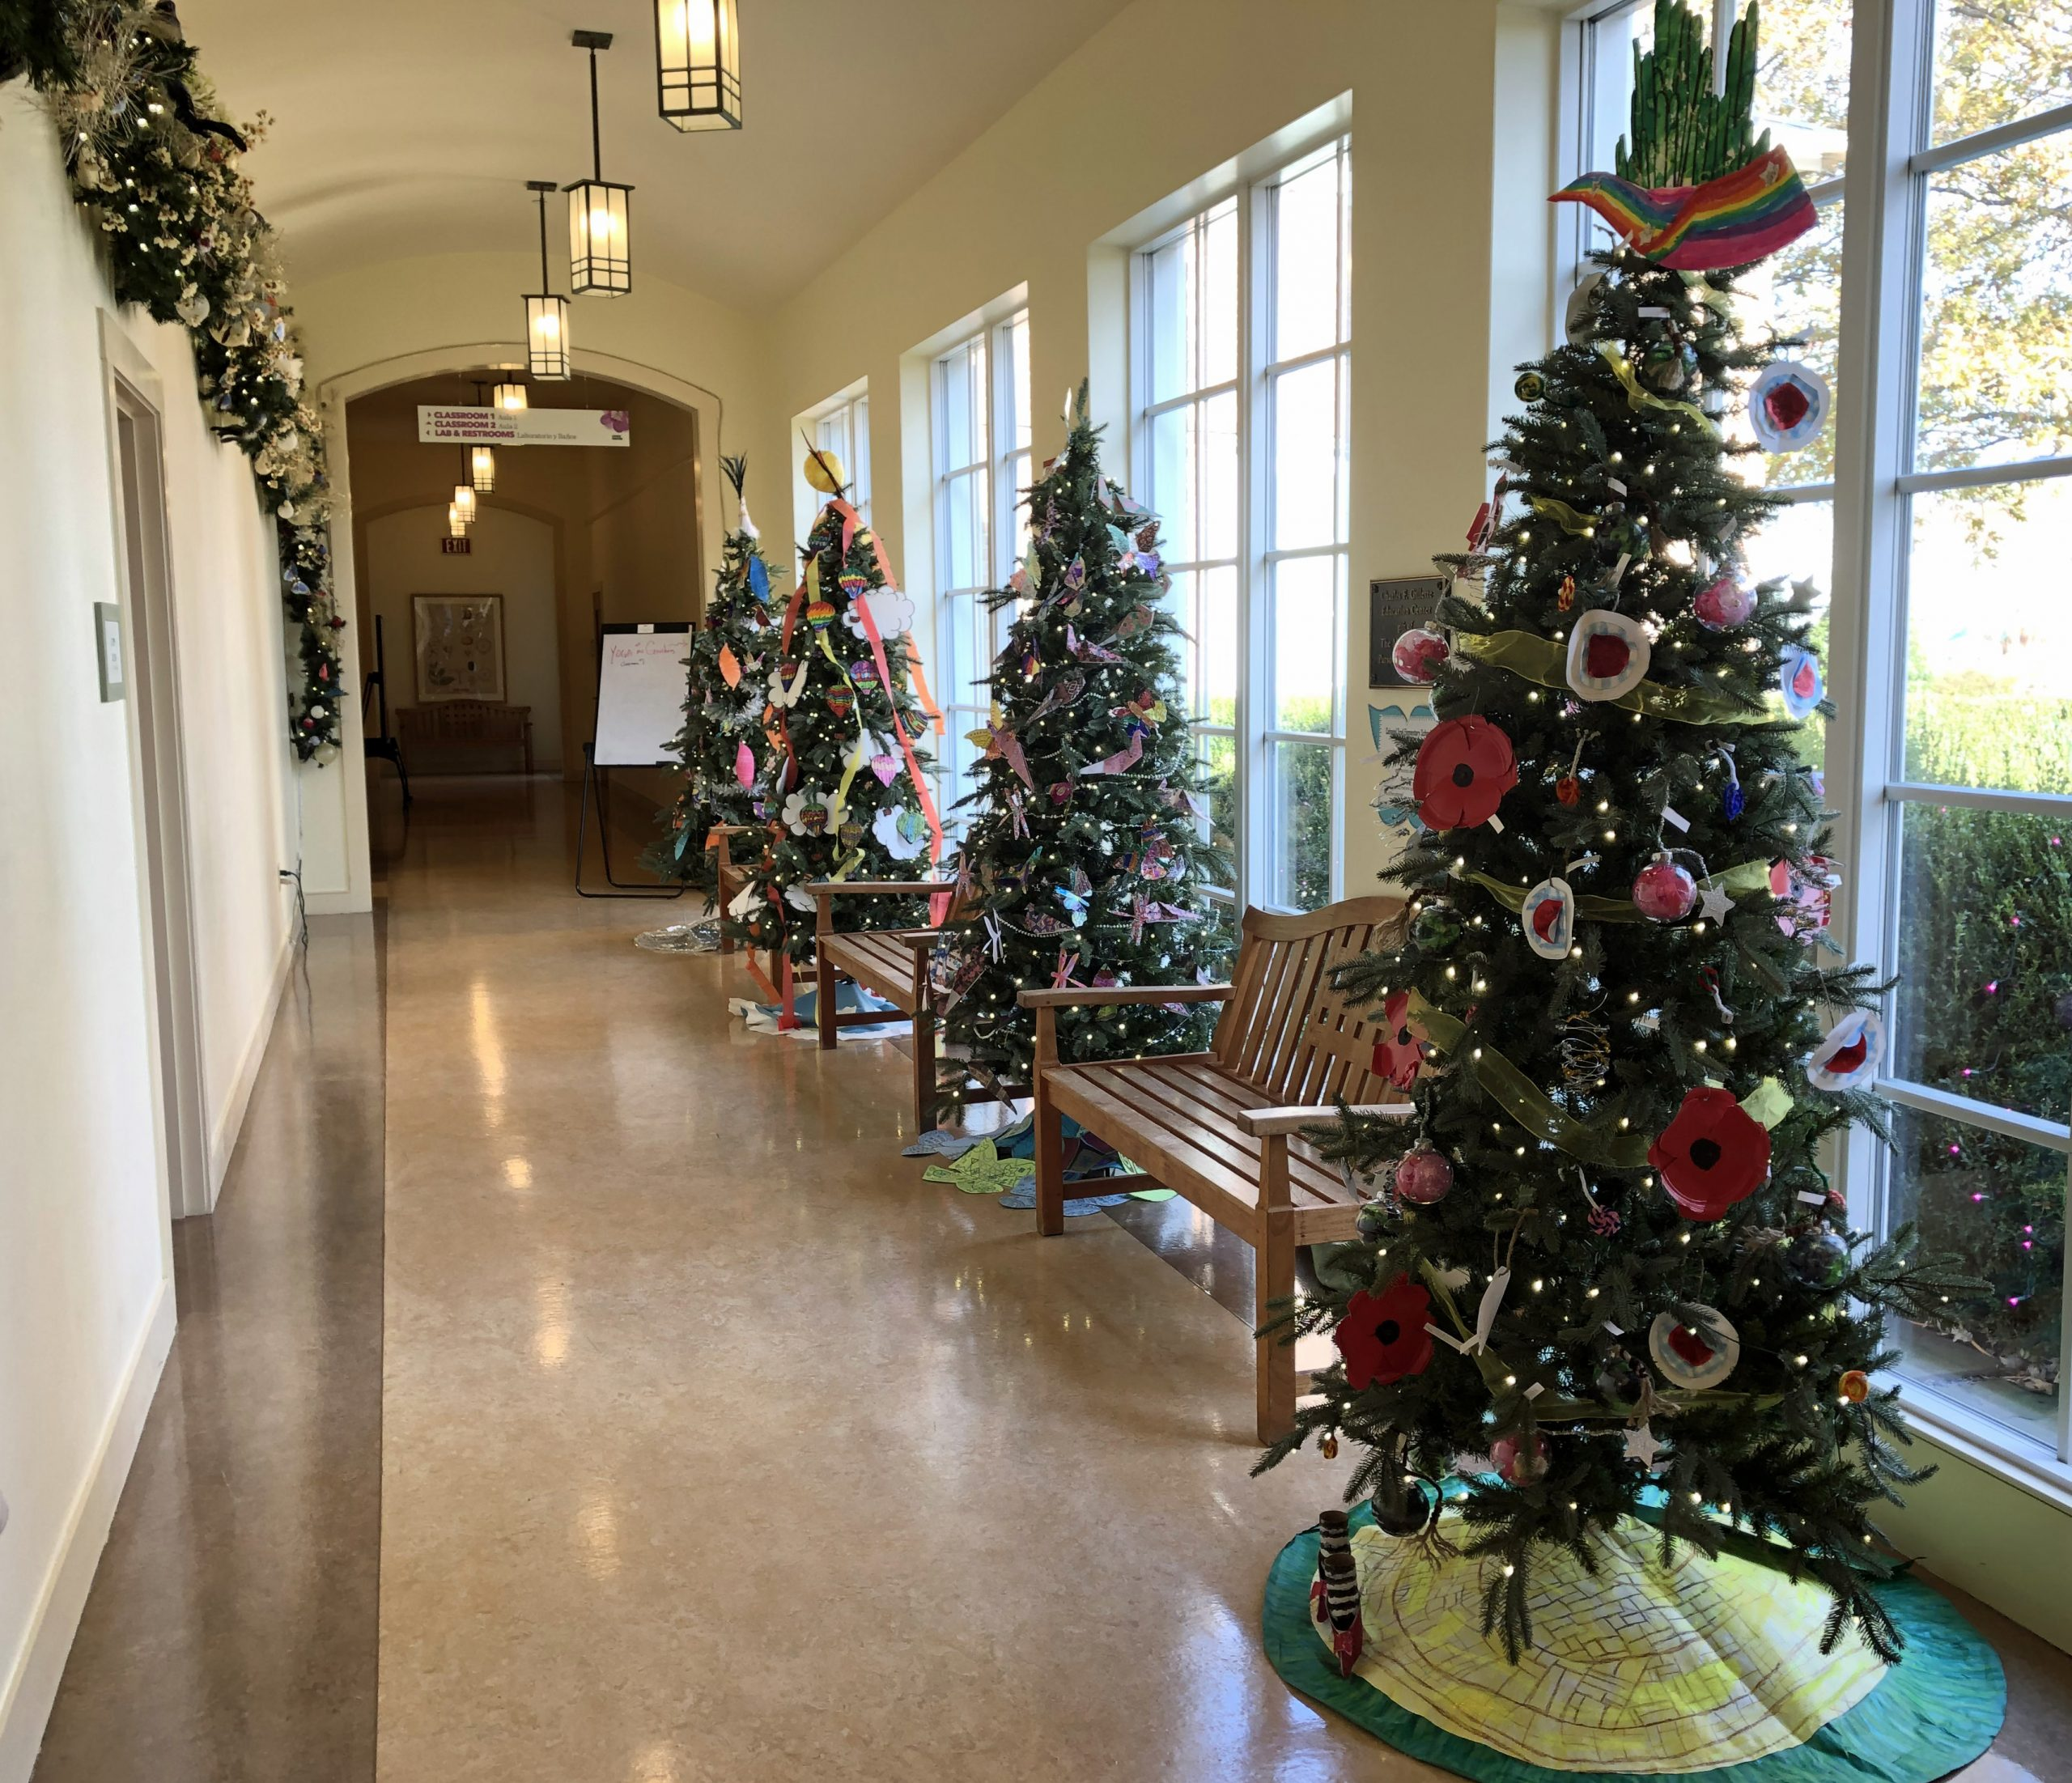 Hallway at Lewis Ginter Botanical Garden with holiday decorations on trees